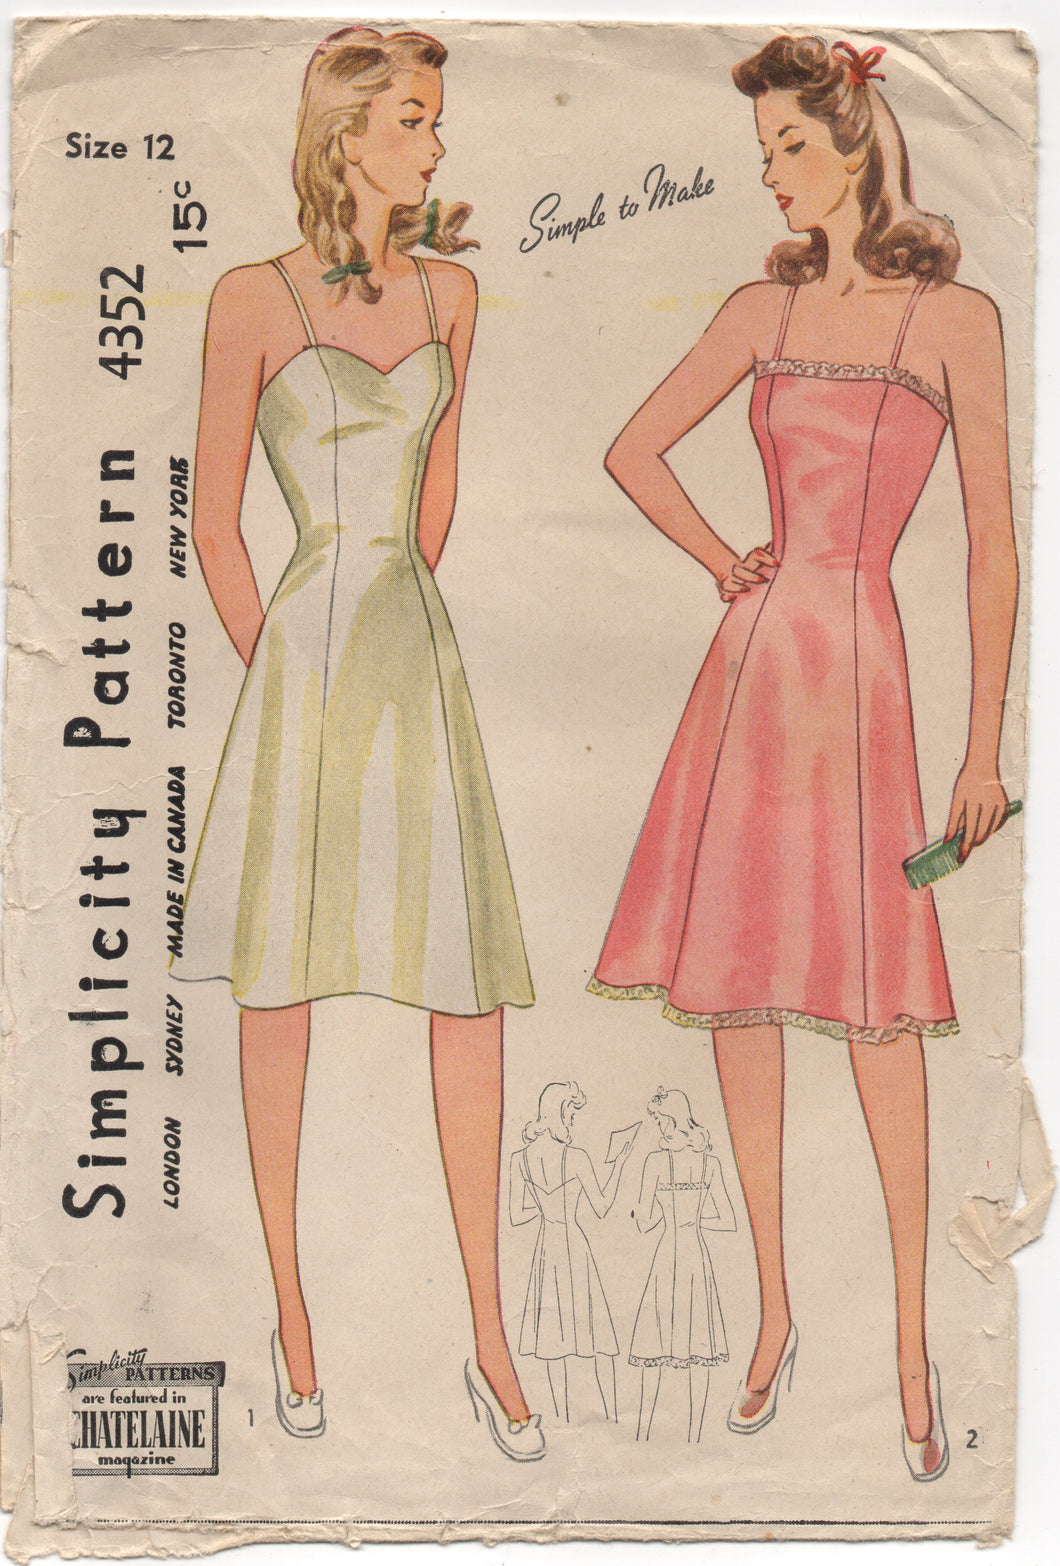 1940's Simplicity Slip In Two Styles - Bust 30